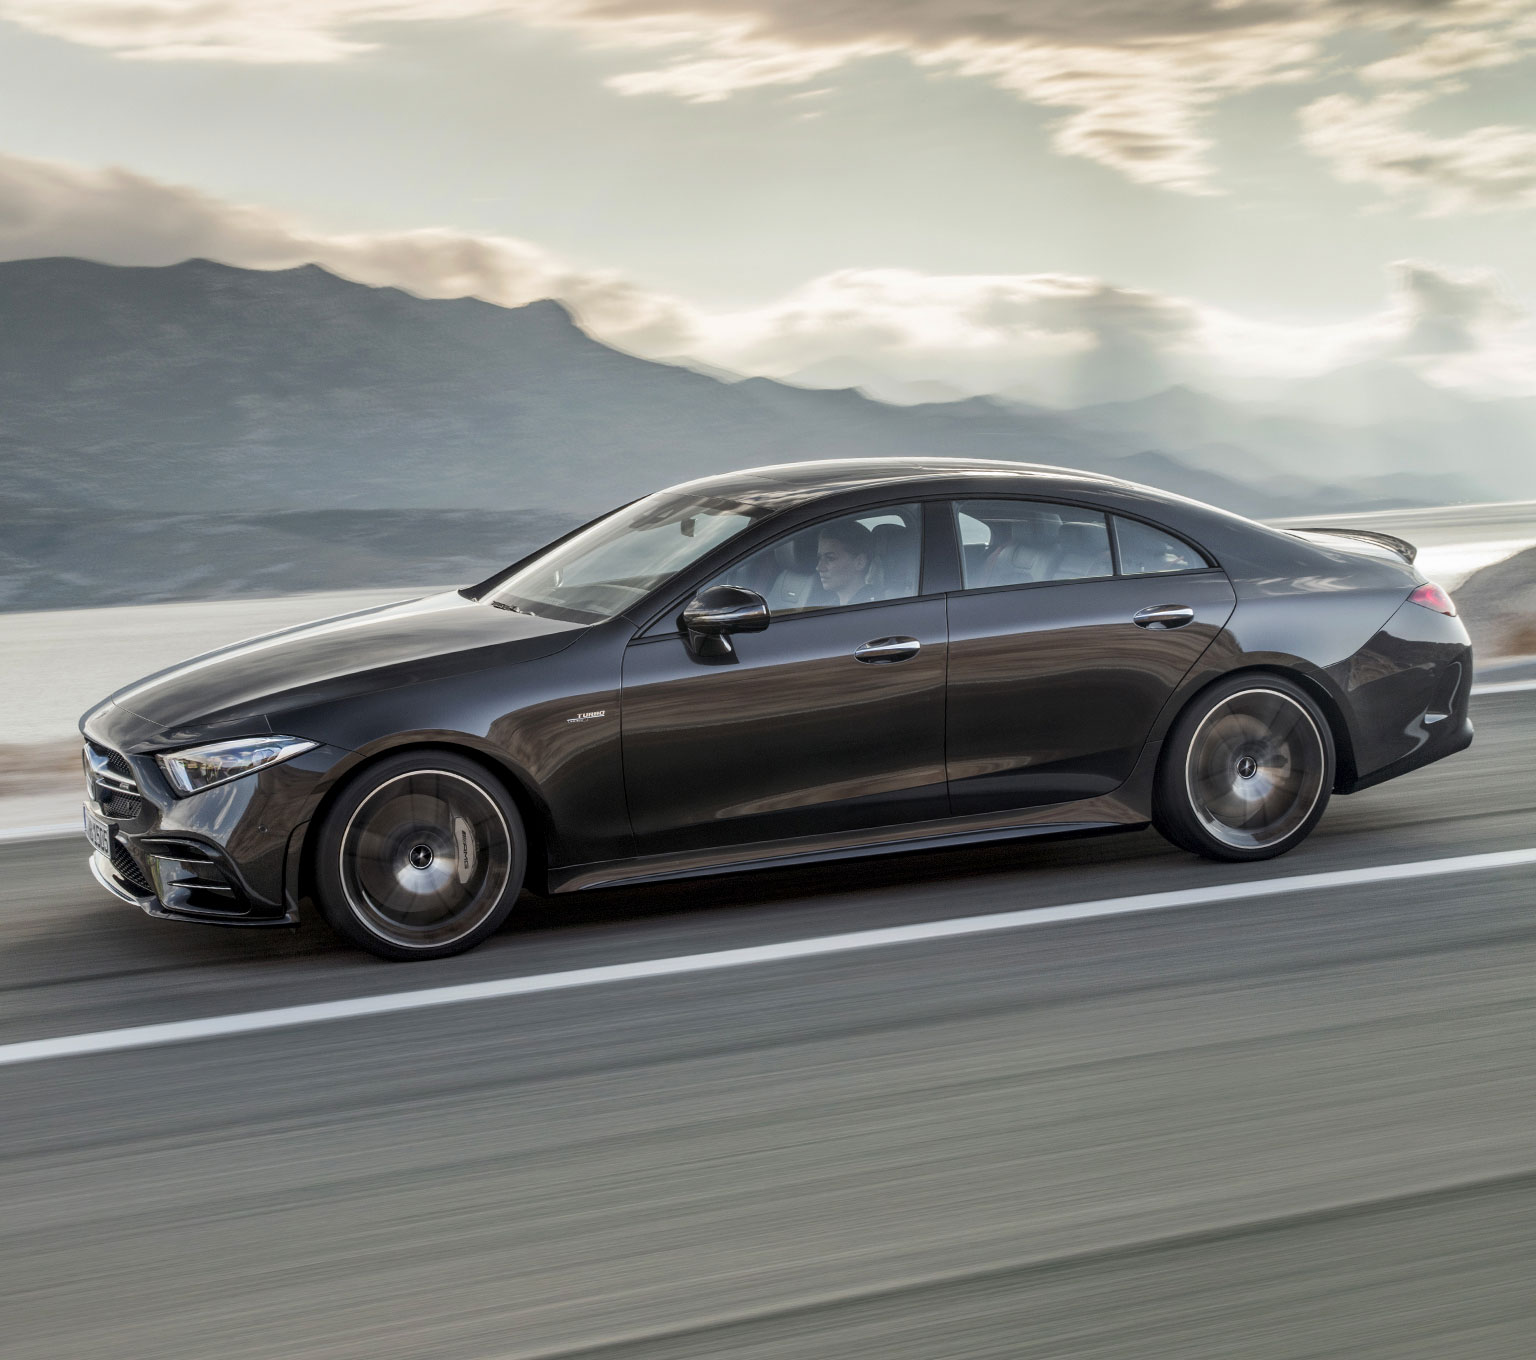 2019 Cls53 Amg Coupe Future Highlights 02 Dr O Mercedes Benz Of